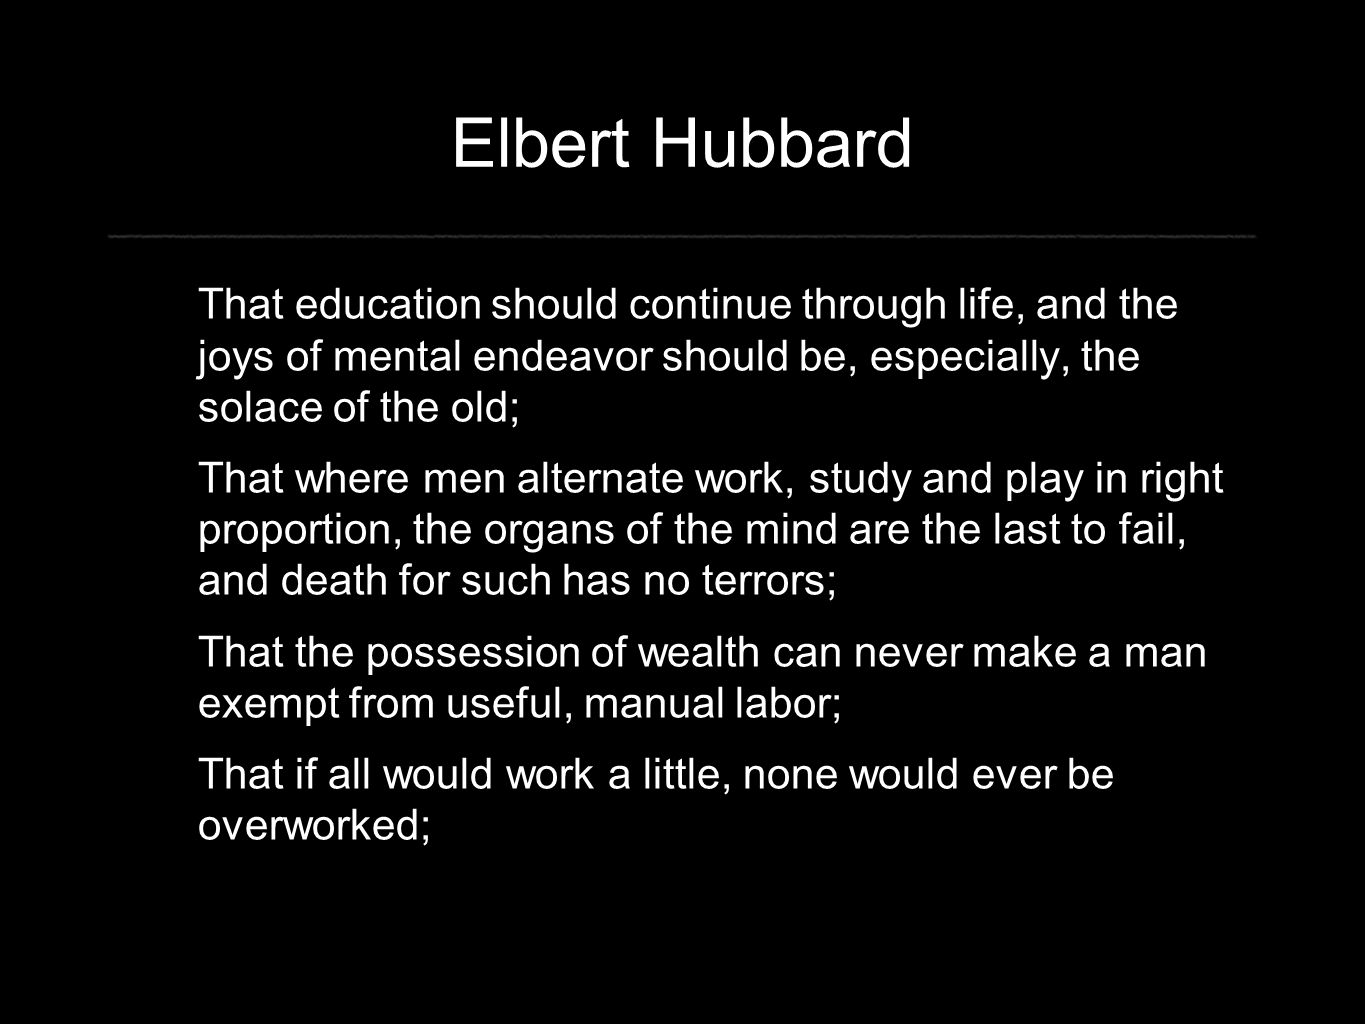 Elbert Hubbard That education should continue through life, and the joys of mental endeavor should be, especially, the solace of the old; That where men alternate work, study and play in right proportion, the organs of the mind are the last to fail, and death for such has no terrors; That the possession of wealth can never make a man exempt from useful, manual labor; That if all would work a little, none would ever be overworked;